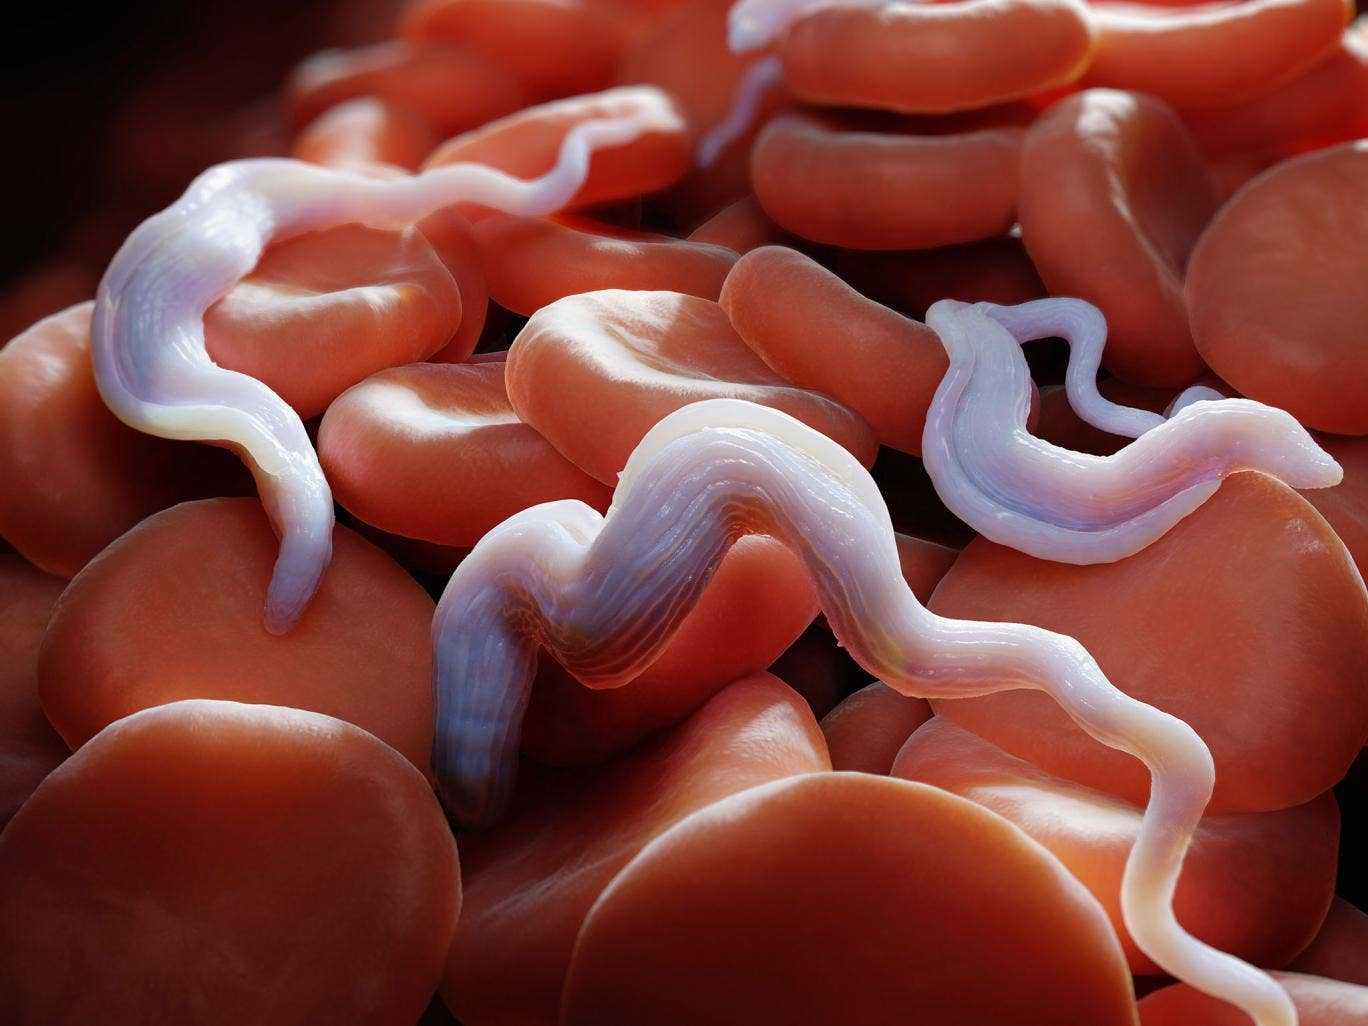 causal dating Worms